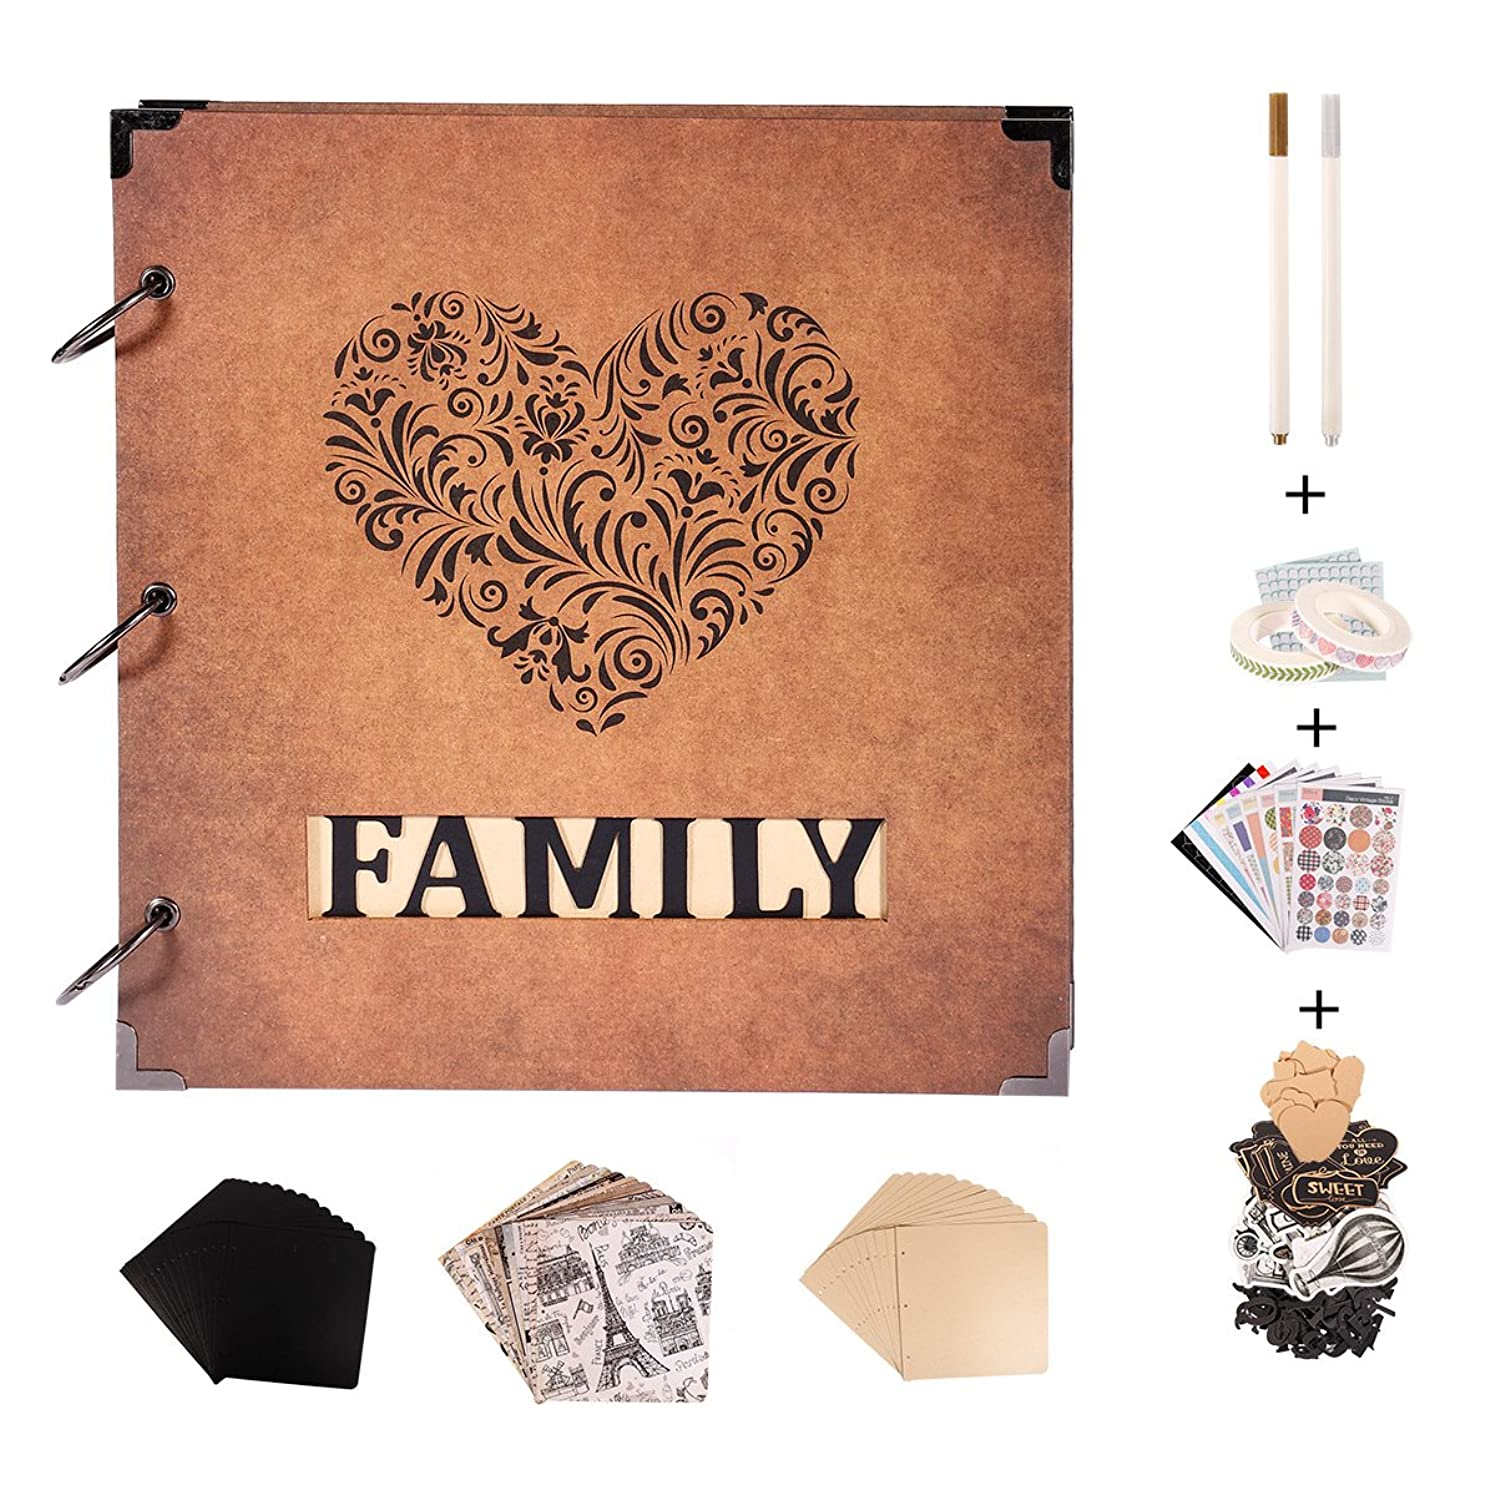 SICOHOME Scrapbook Album,10x10.5 Inch Vintage Scrapbook Ablum with Words Frame Opening